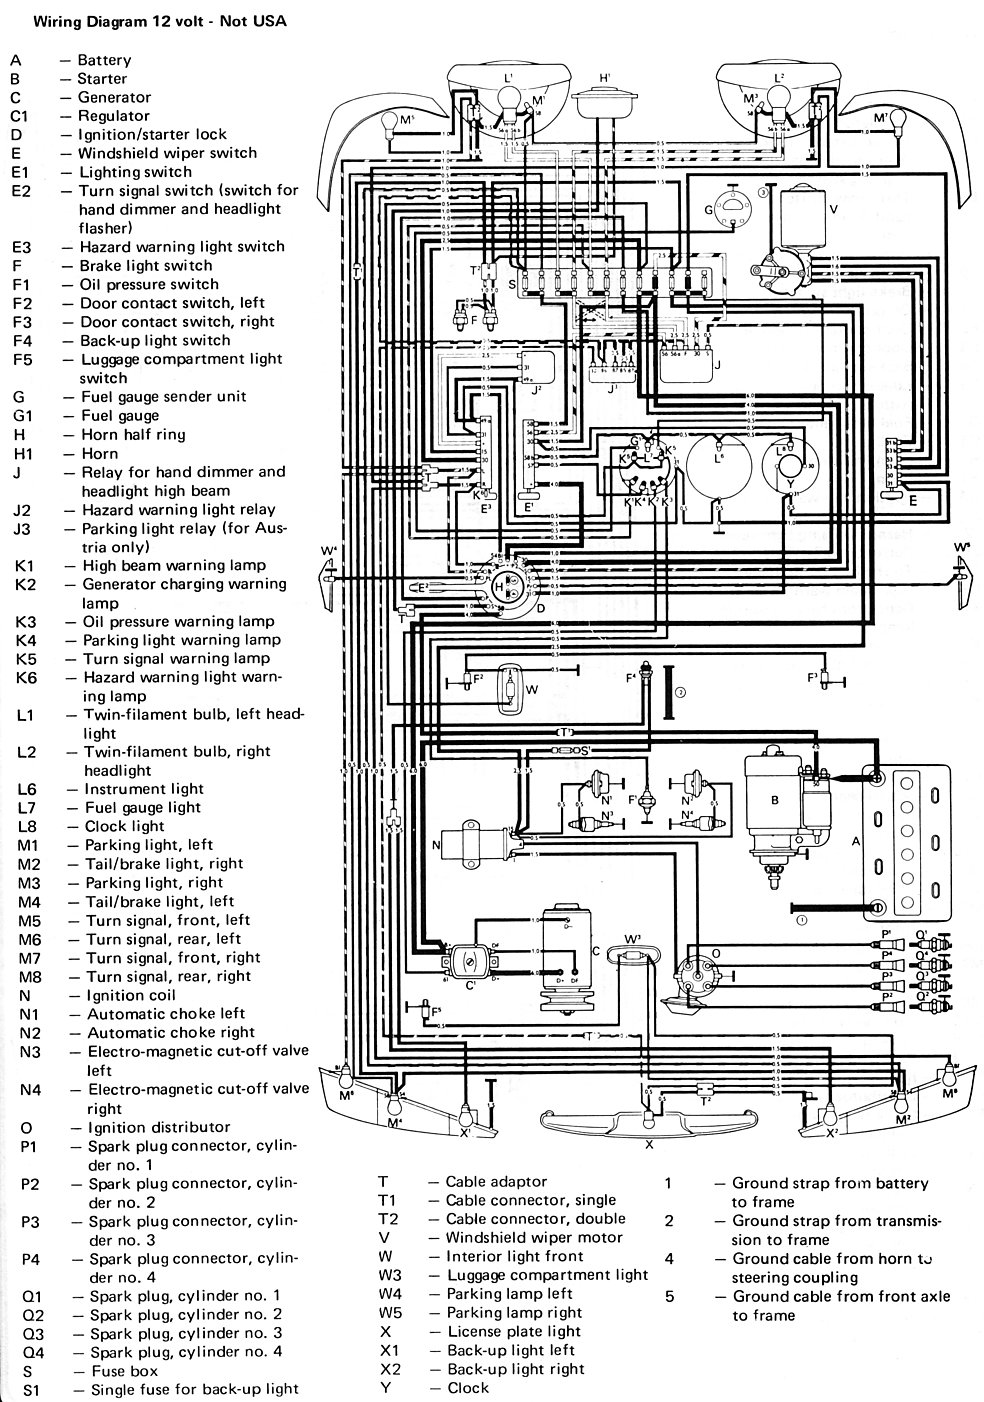 1976 Corvette Wiring Schematic Quick Start Guide Of Diagram 1968 Chevy Air Conditioning Imageresizertool Com Dash